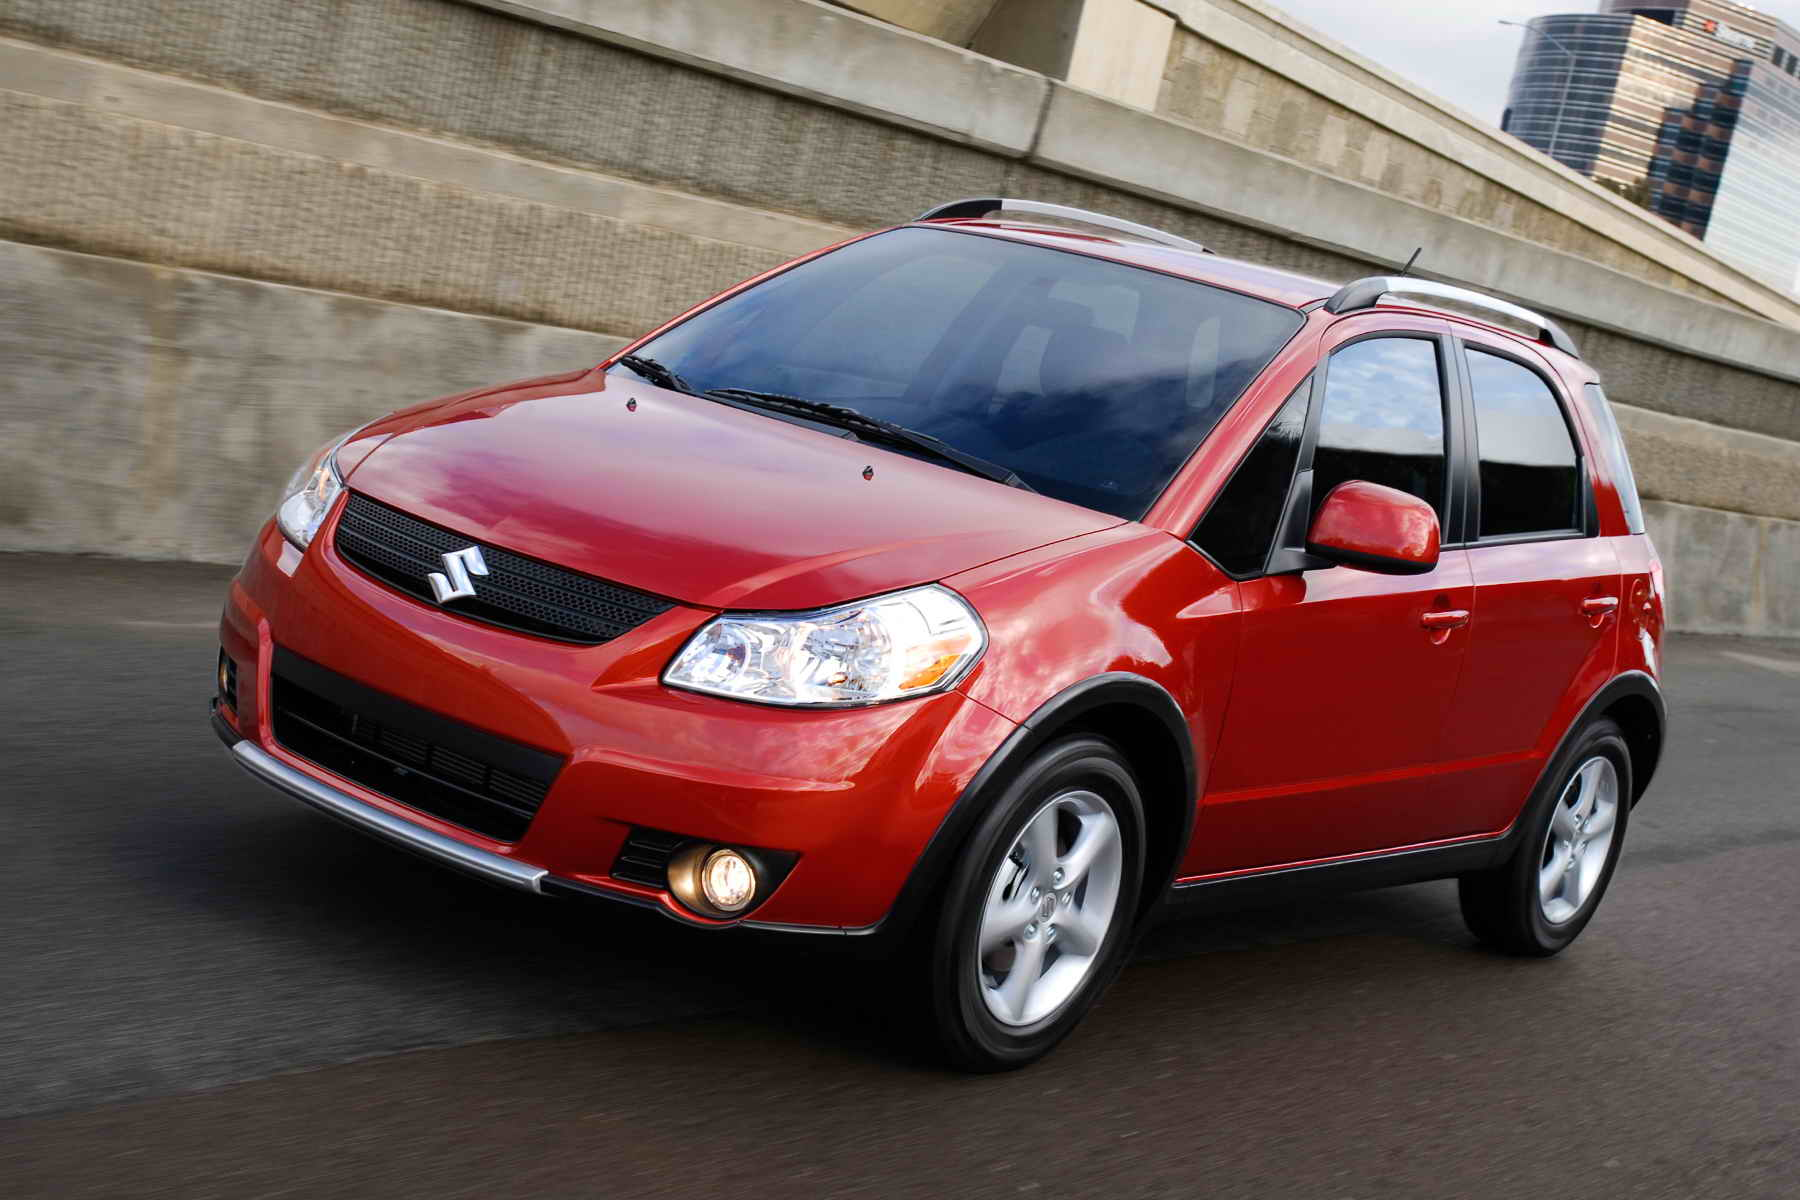 2007 Suzuki Xl7 And Sx4 Prices Announced Top Speed